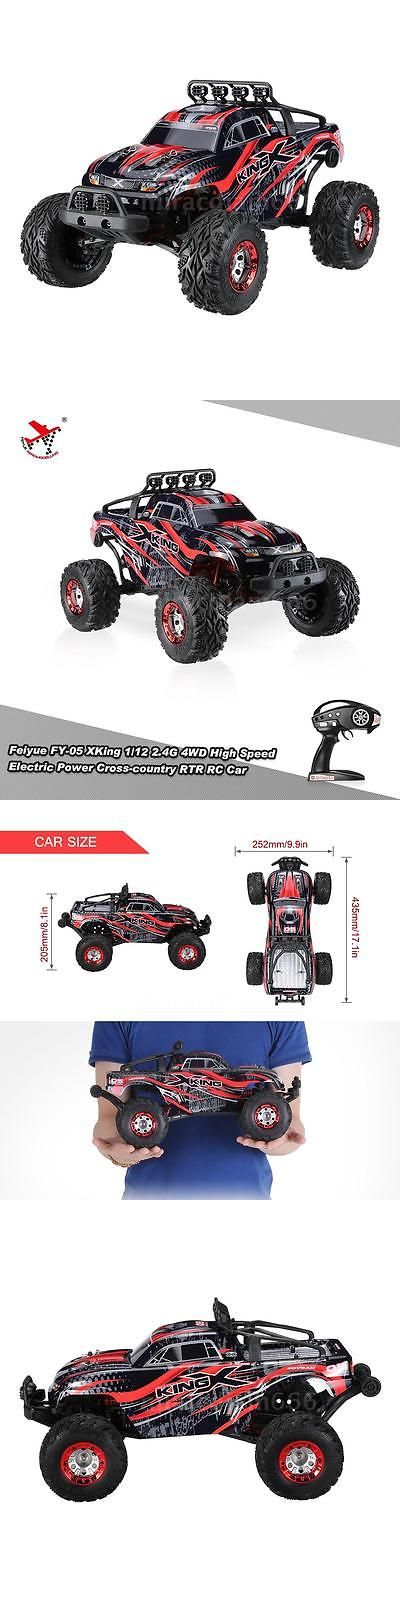 Radio Control 51029: Feiyue Fy-05 Xking 1 12 2.4G 4Wd Cross-Country Rtr Rc Car Off-Road Red Sale R1q1 -> BUY IT NOW ONLY: $51.36 on eBay!